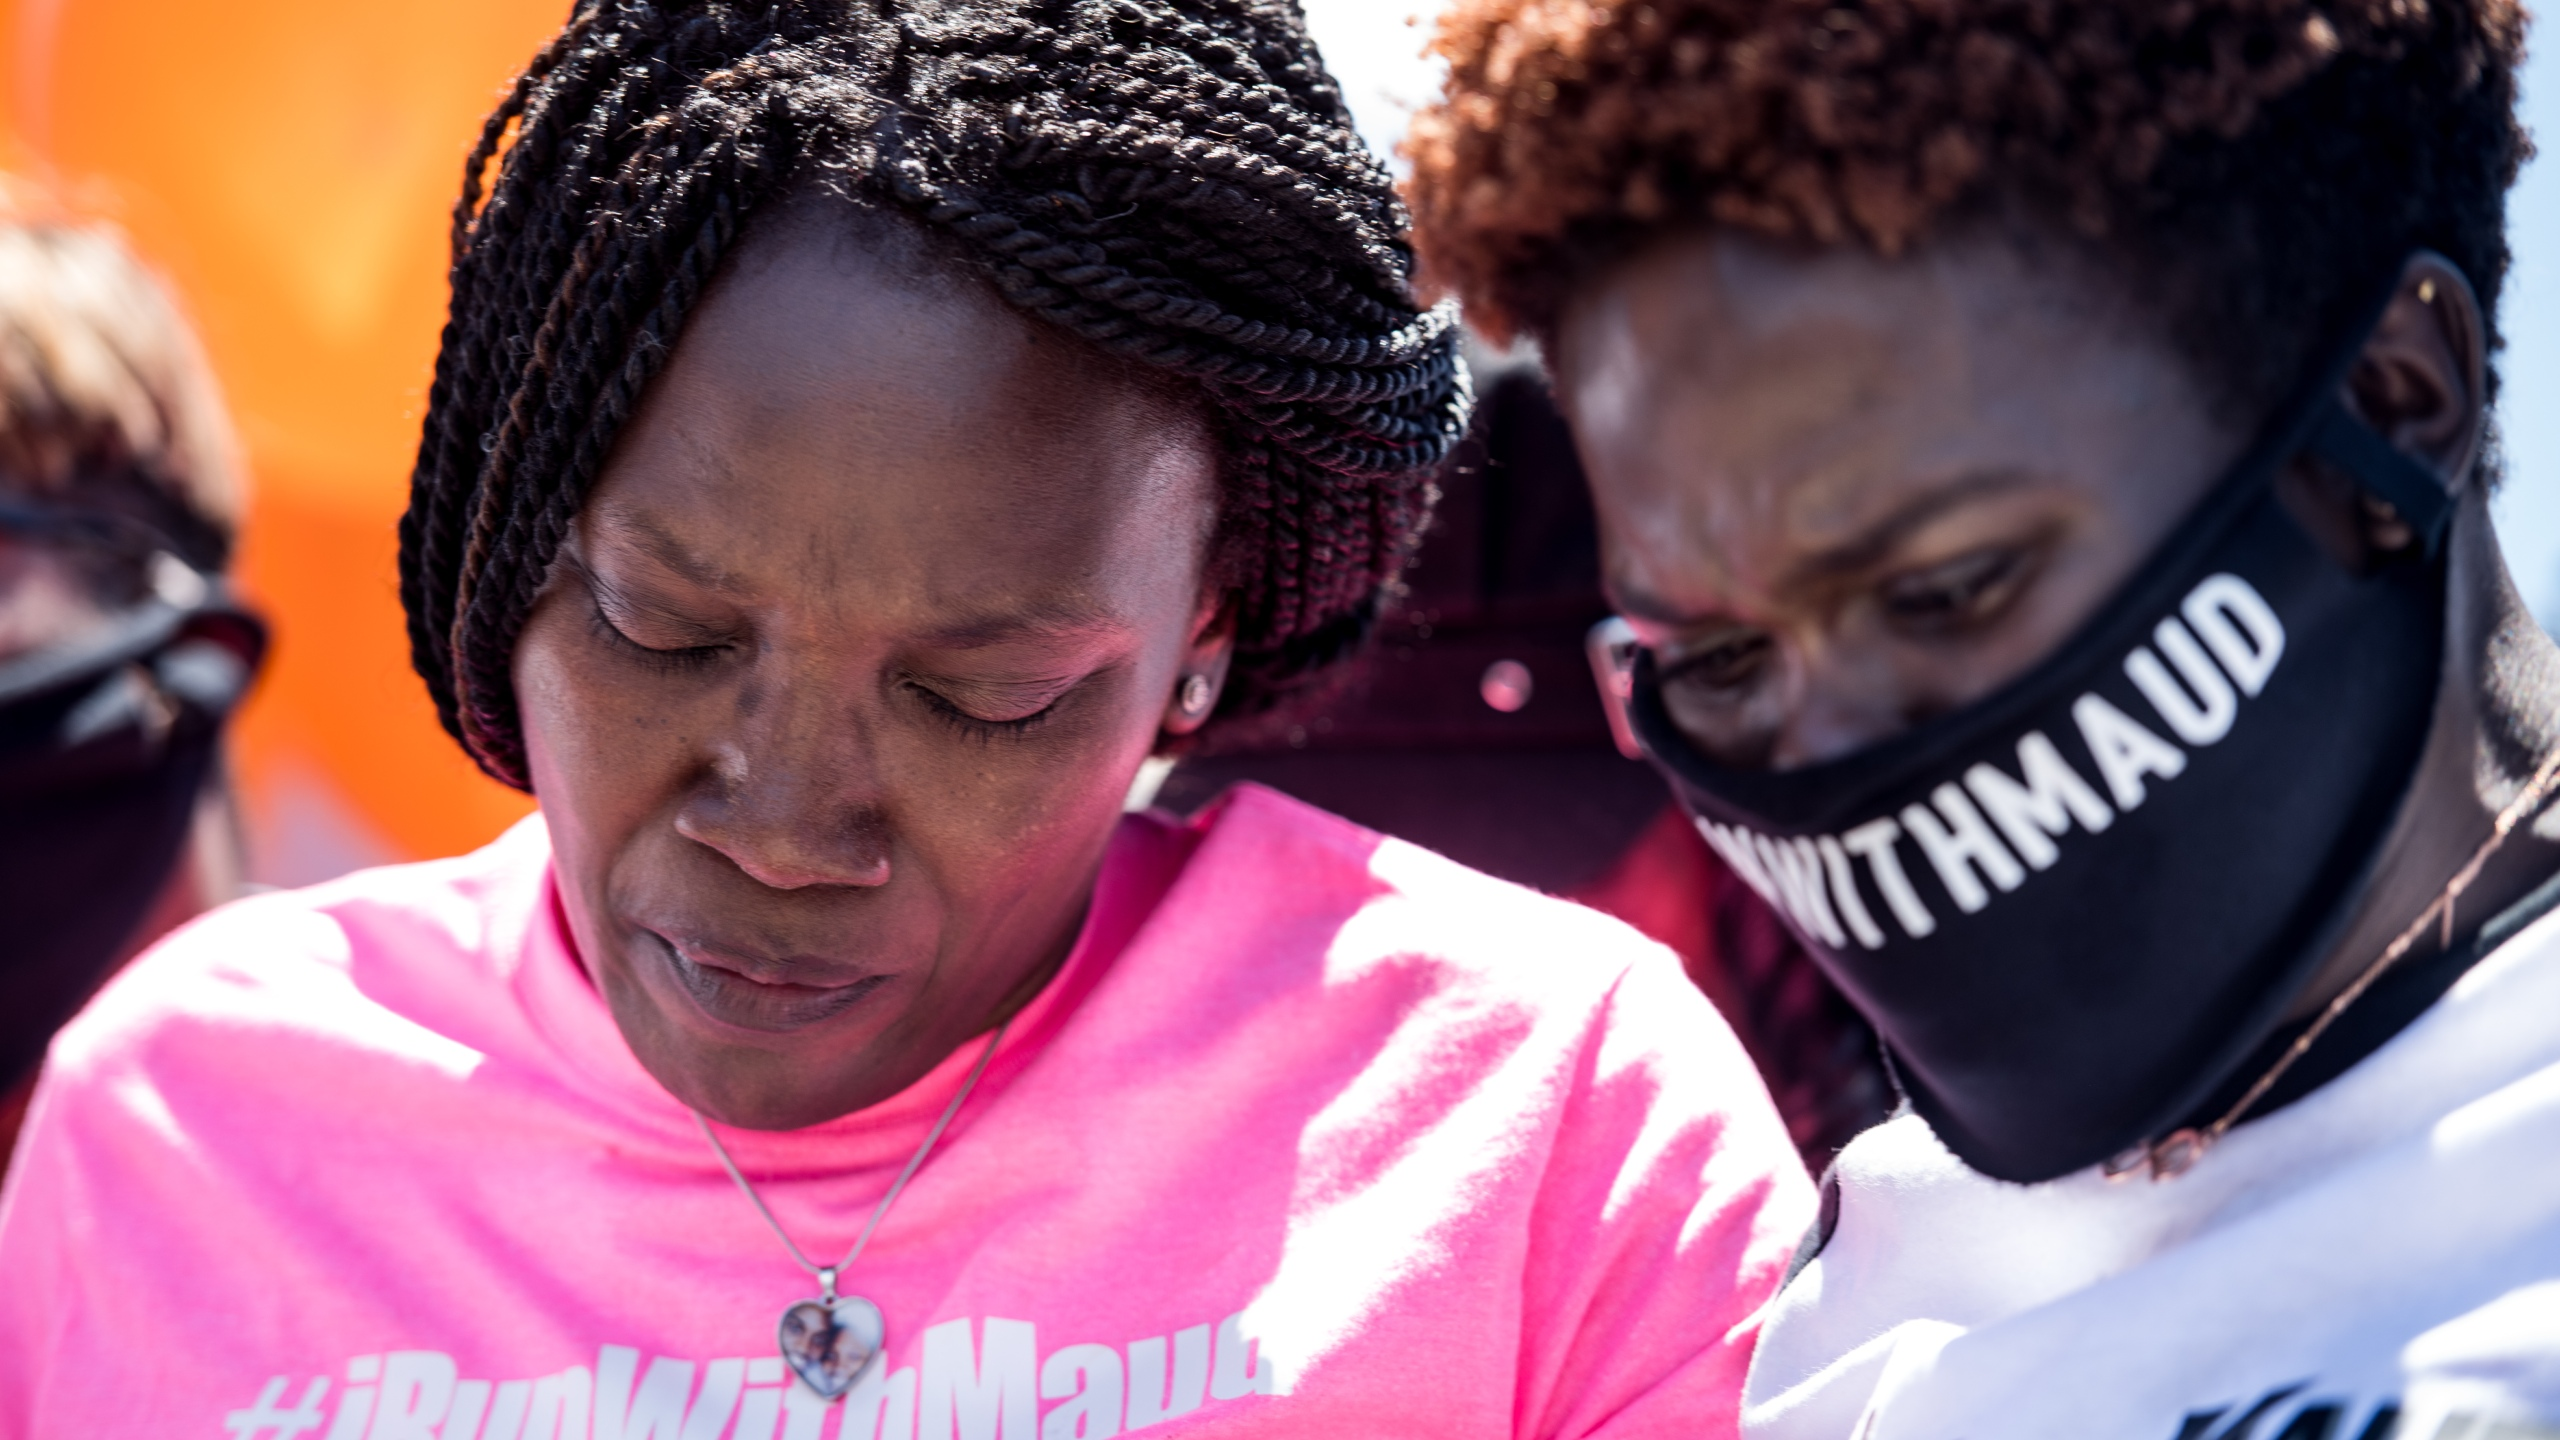 Jasmine Arbery, sister of Ahmaud Arbery, and Wanda Cooper-Jones, Ahmaud's mother, are seen at a gathering to honor Ahmaud at Sidney Lanier Park on May 9, 2020, in Brunswick, Georgia. (Sean Rayford/Getty Images)